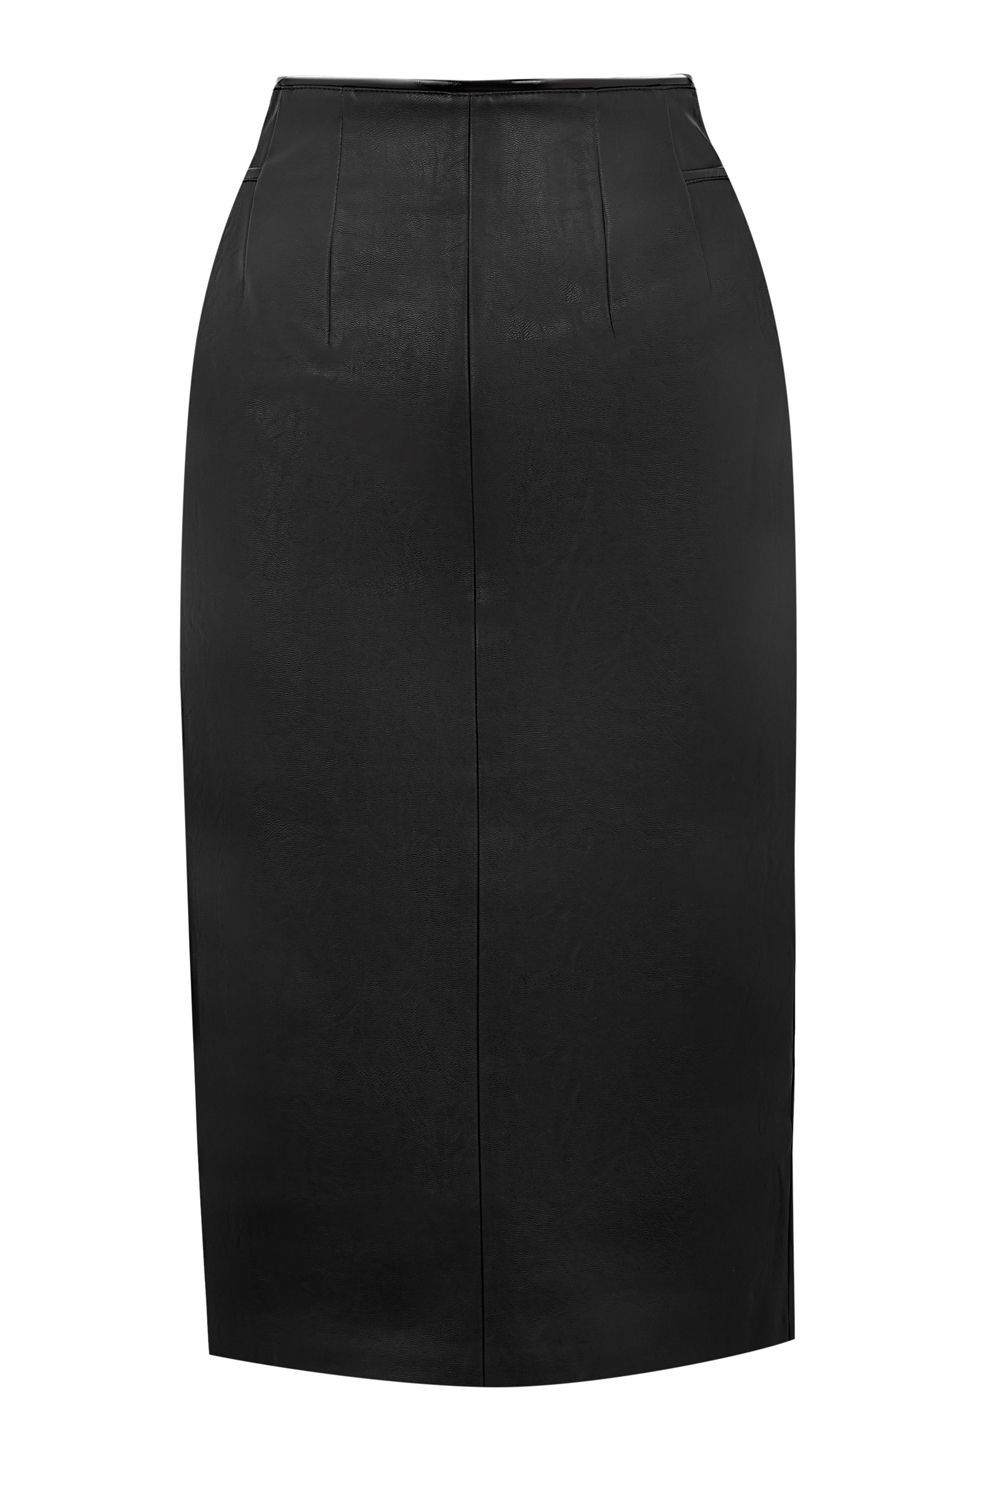 Oasis Faux Leather Pencil Skirt, Black